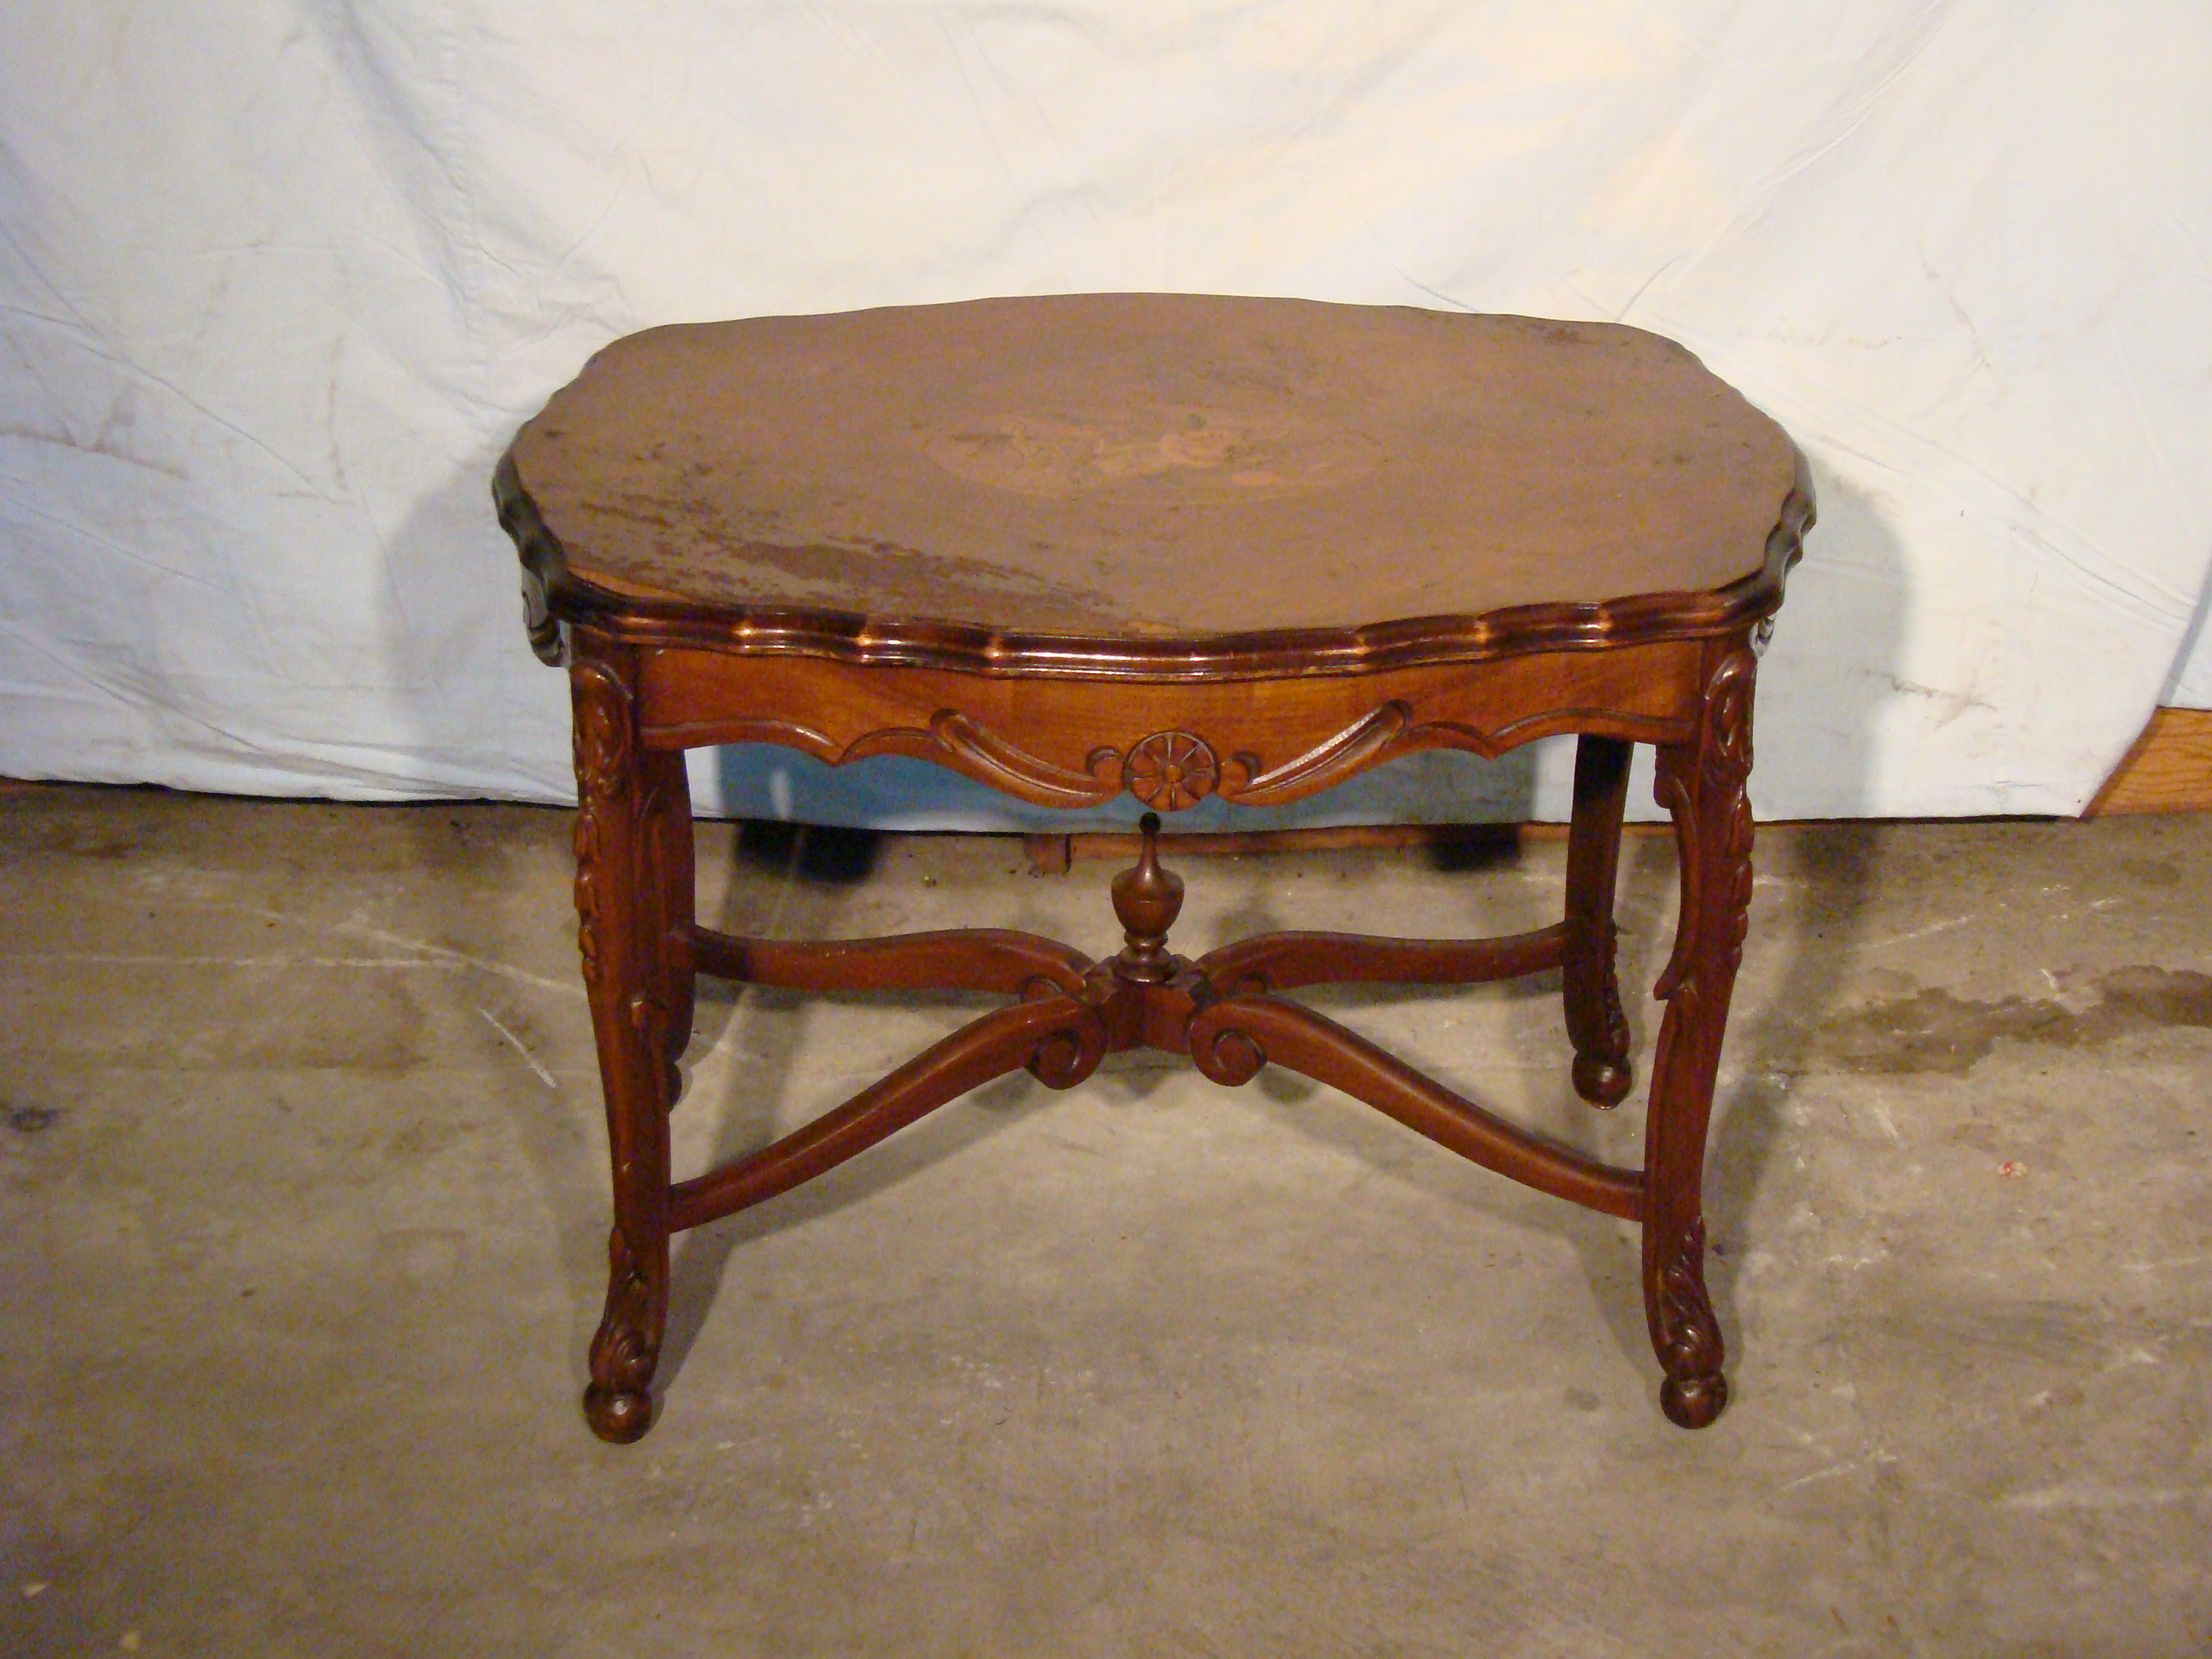 Antique European Coffee Table For Sale Classifieds